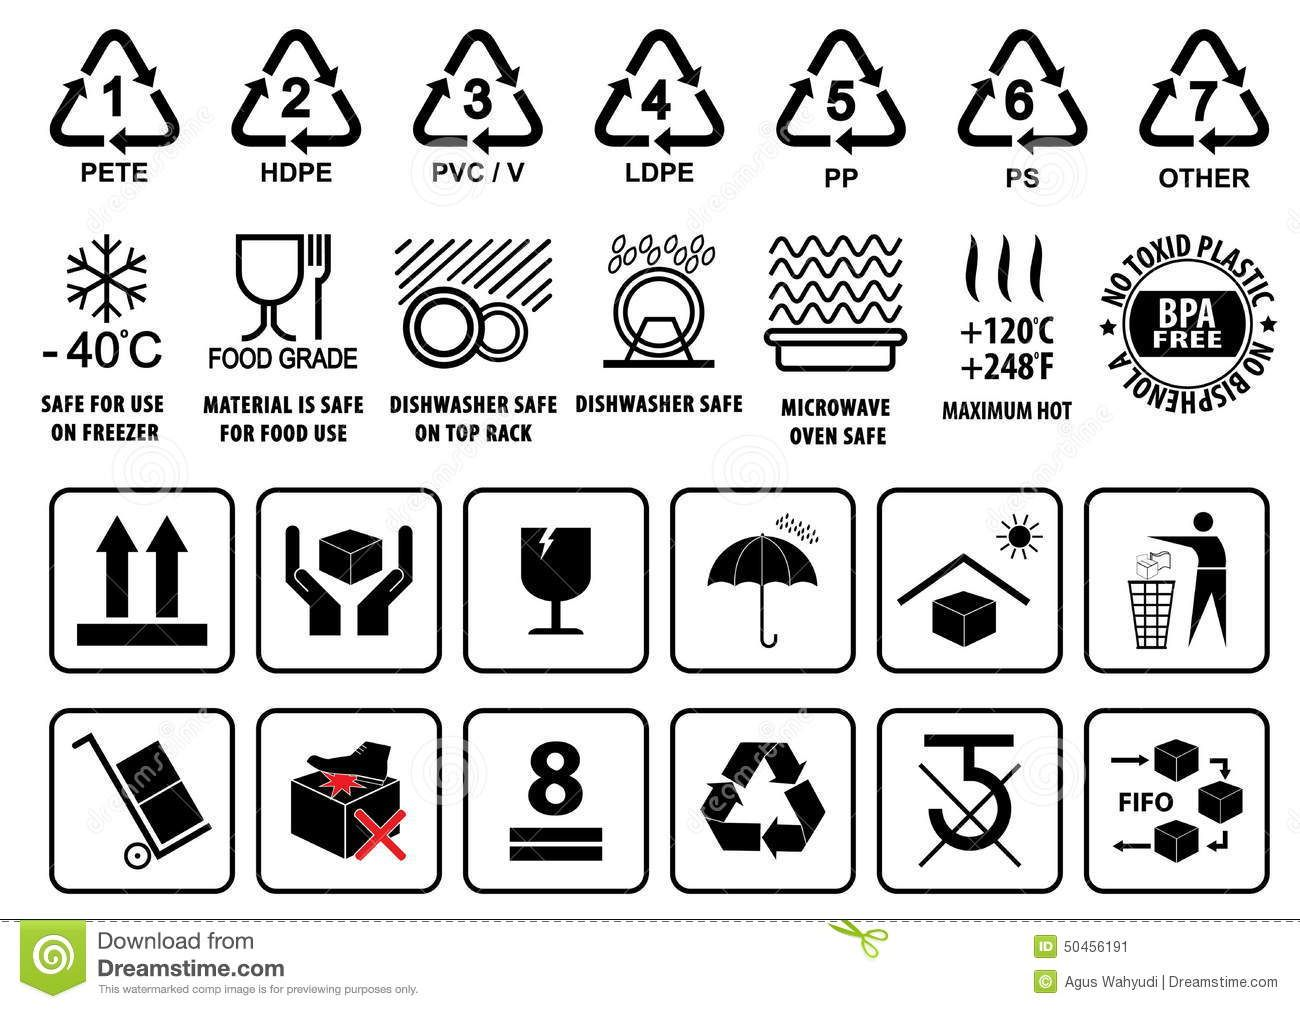 Dishwasher symbols on plastic containers google search home dishwasher symbols on plastic containers google search biocorpaavc Images